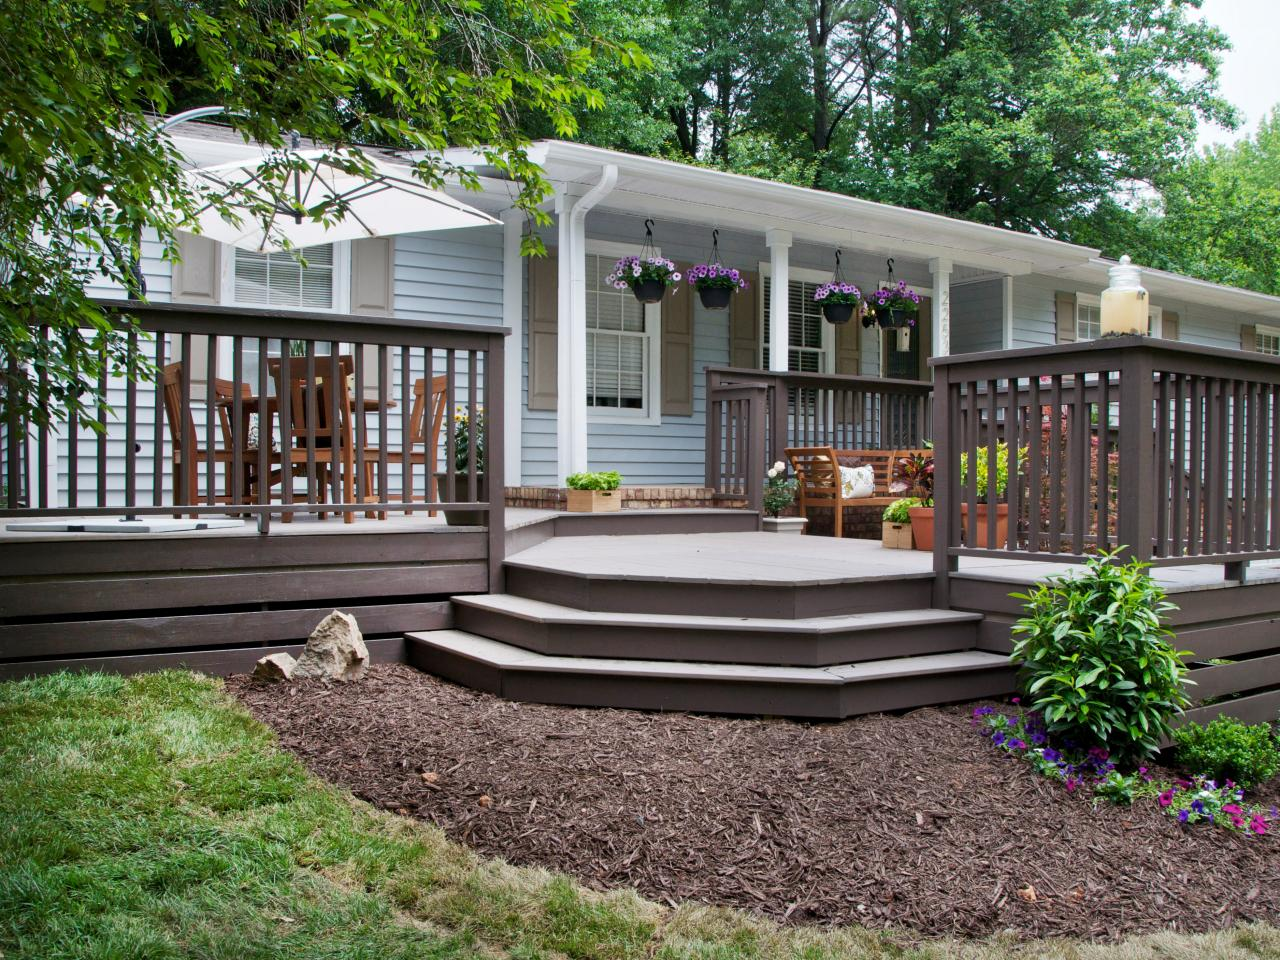 Maximum Home Value Outdoor Living Projects: Deck | HGTV on Back Deck Ideas For Ranch Style Homes  id=65708